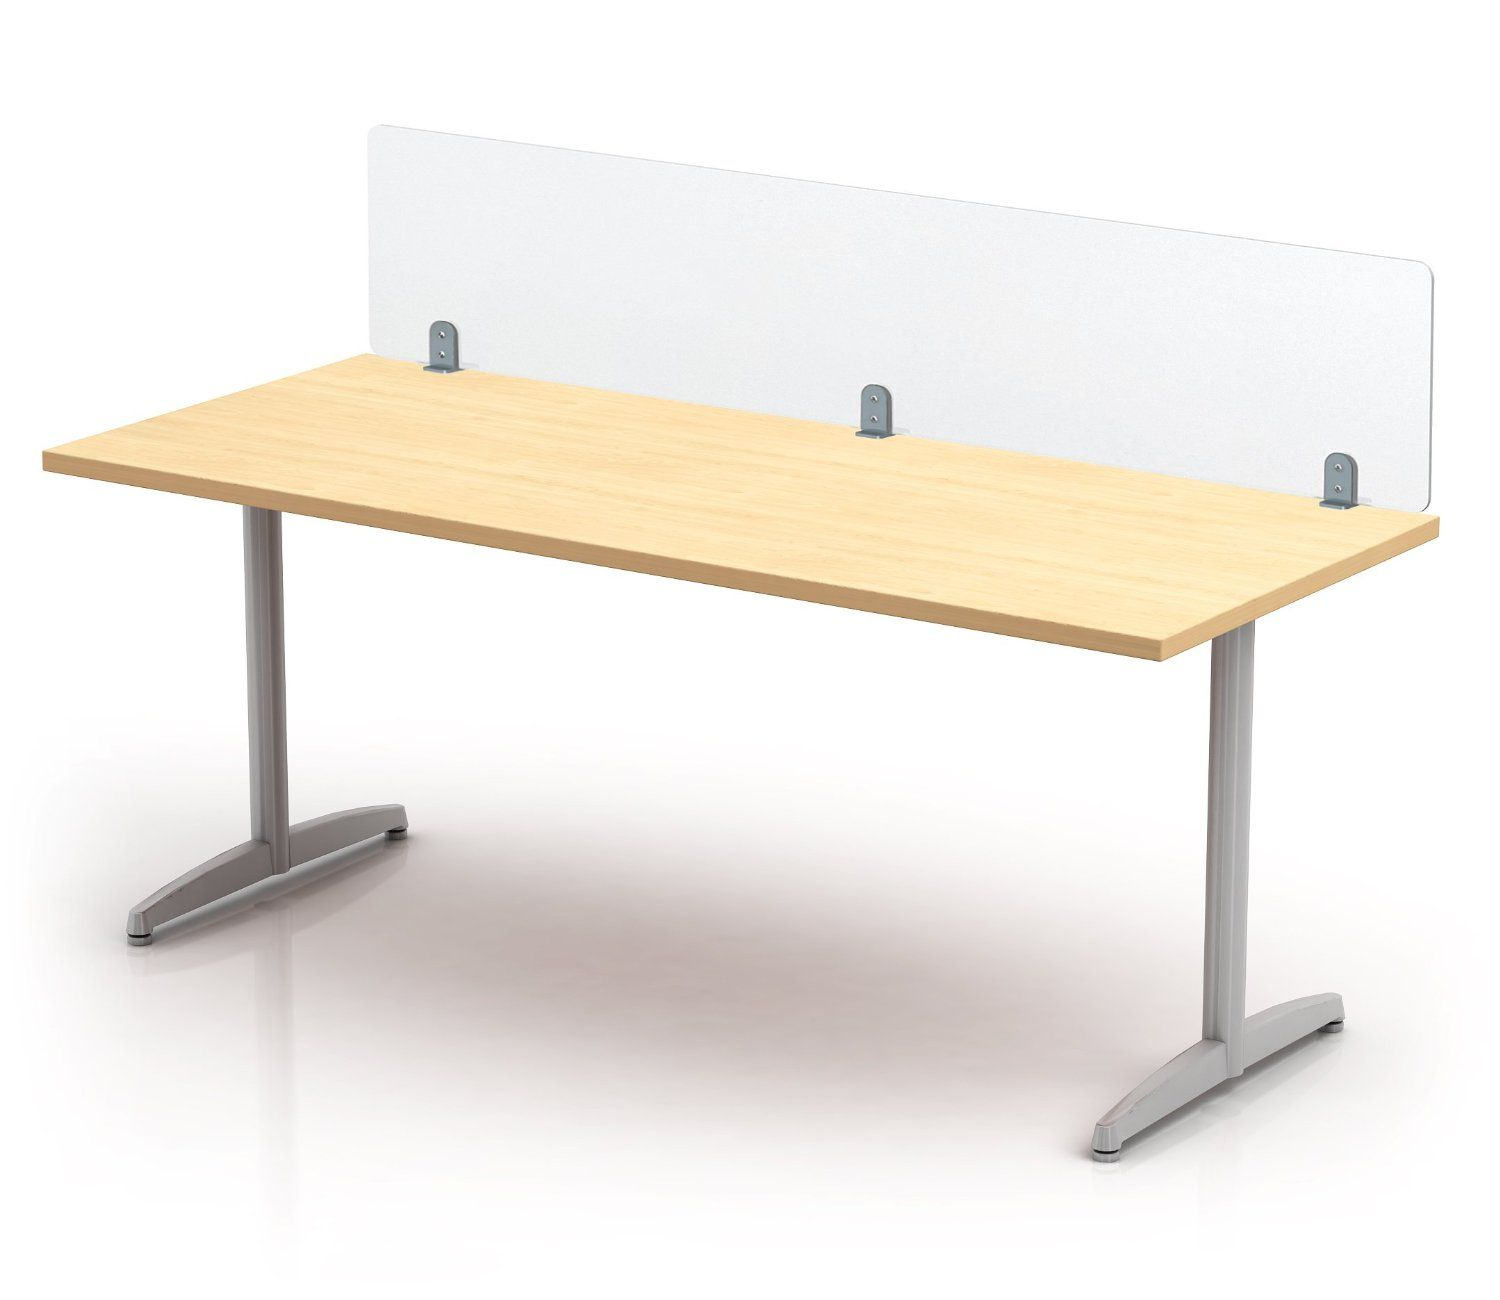 Amazon com : Clamp-on Desk Top Divider, Frosted Acrylic